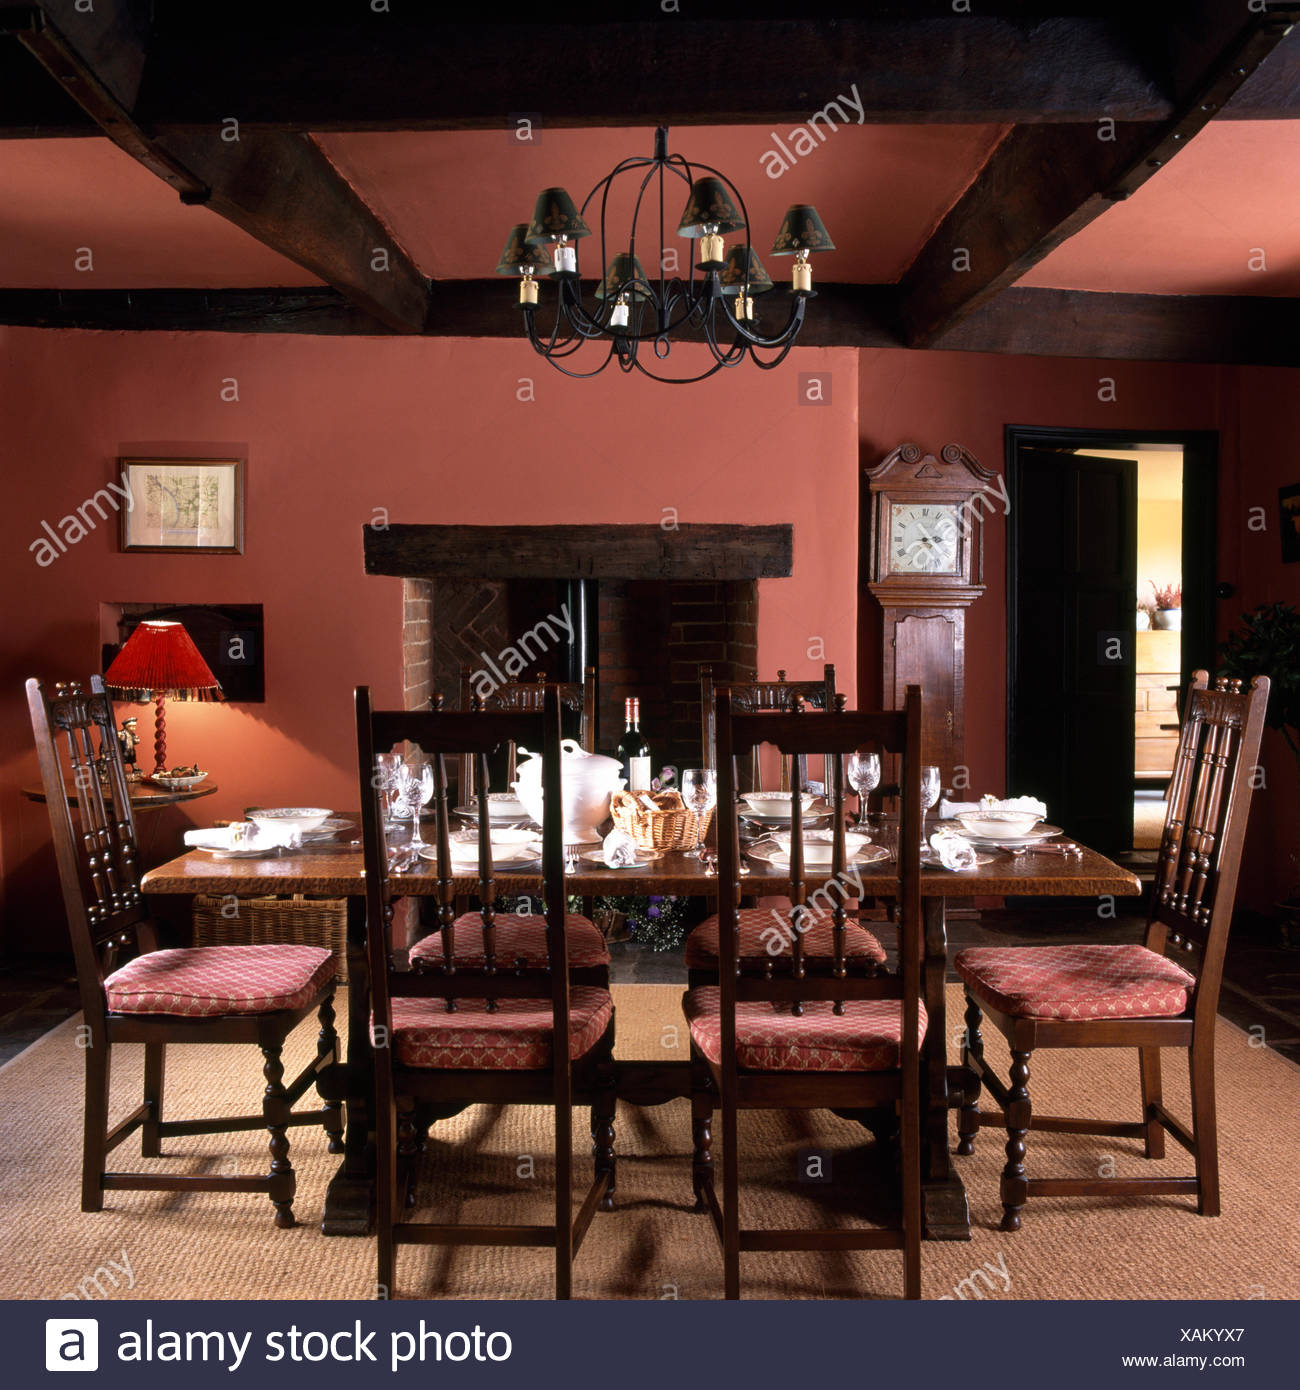 Antique Chairs At Oak Table Set For Lunch In A Deep Pink Country Dining Room Stock Photo Alamy